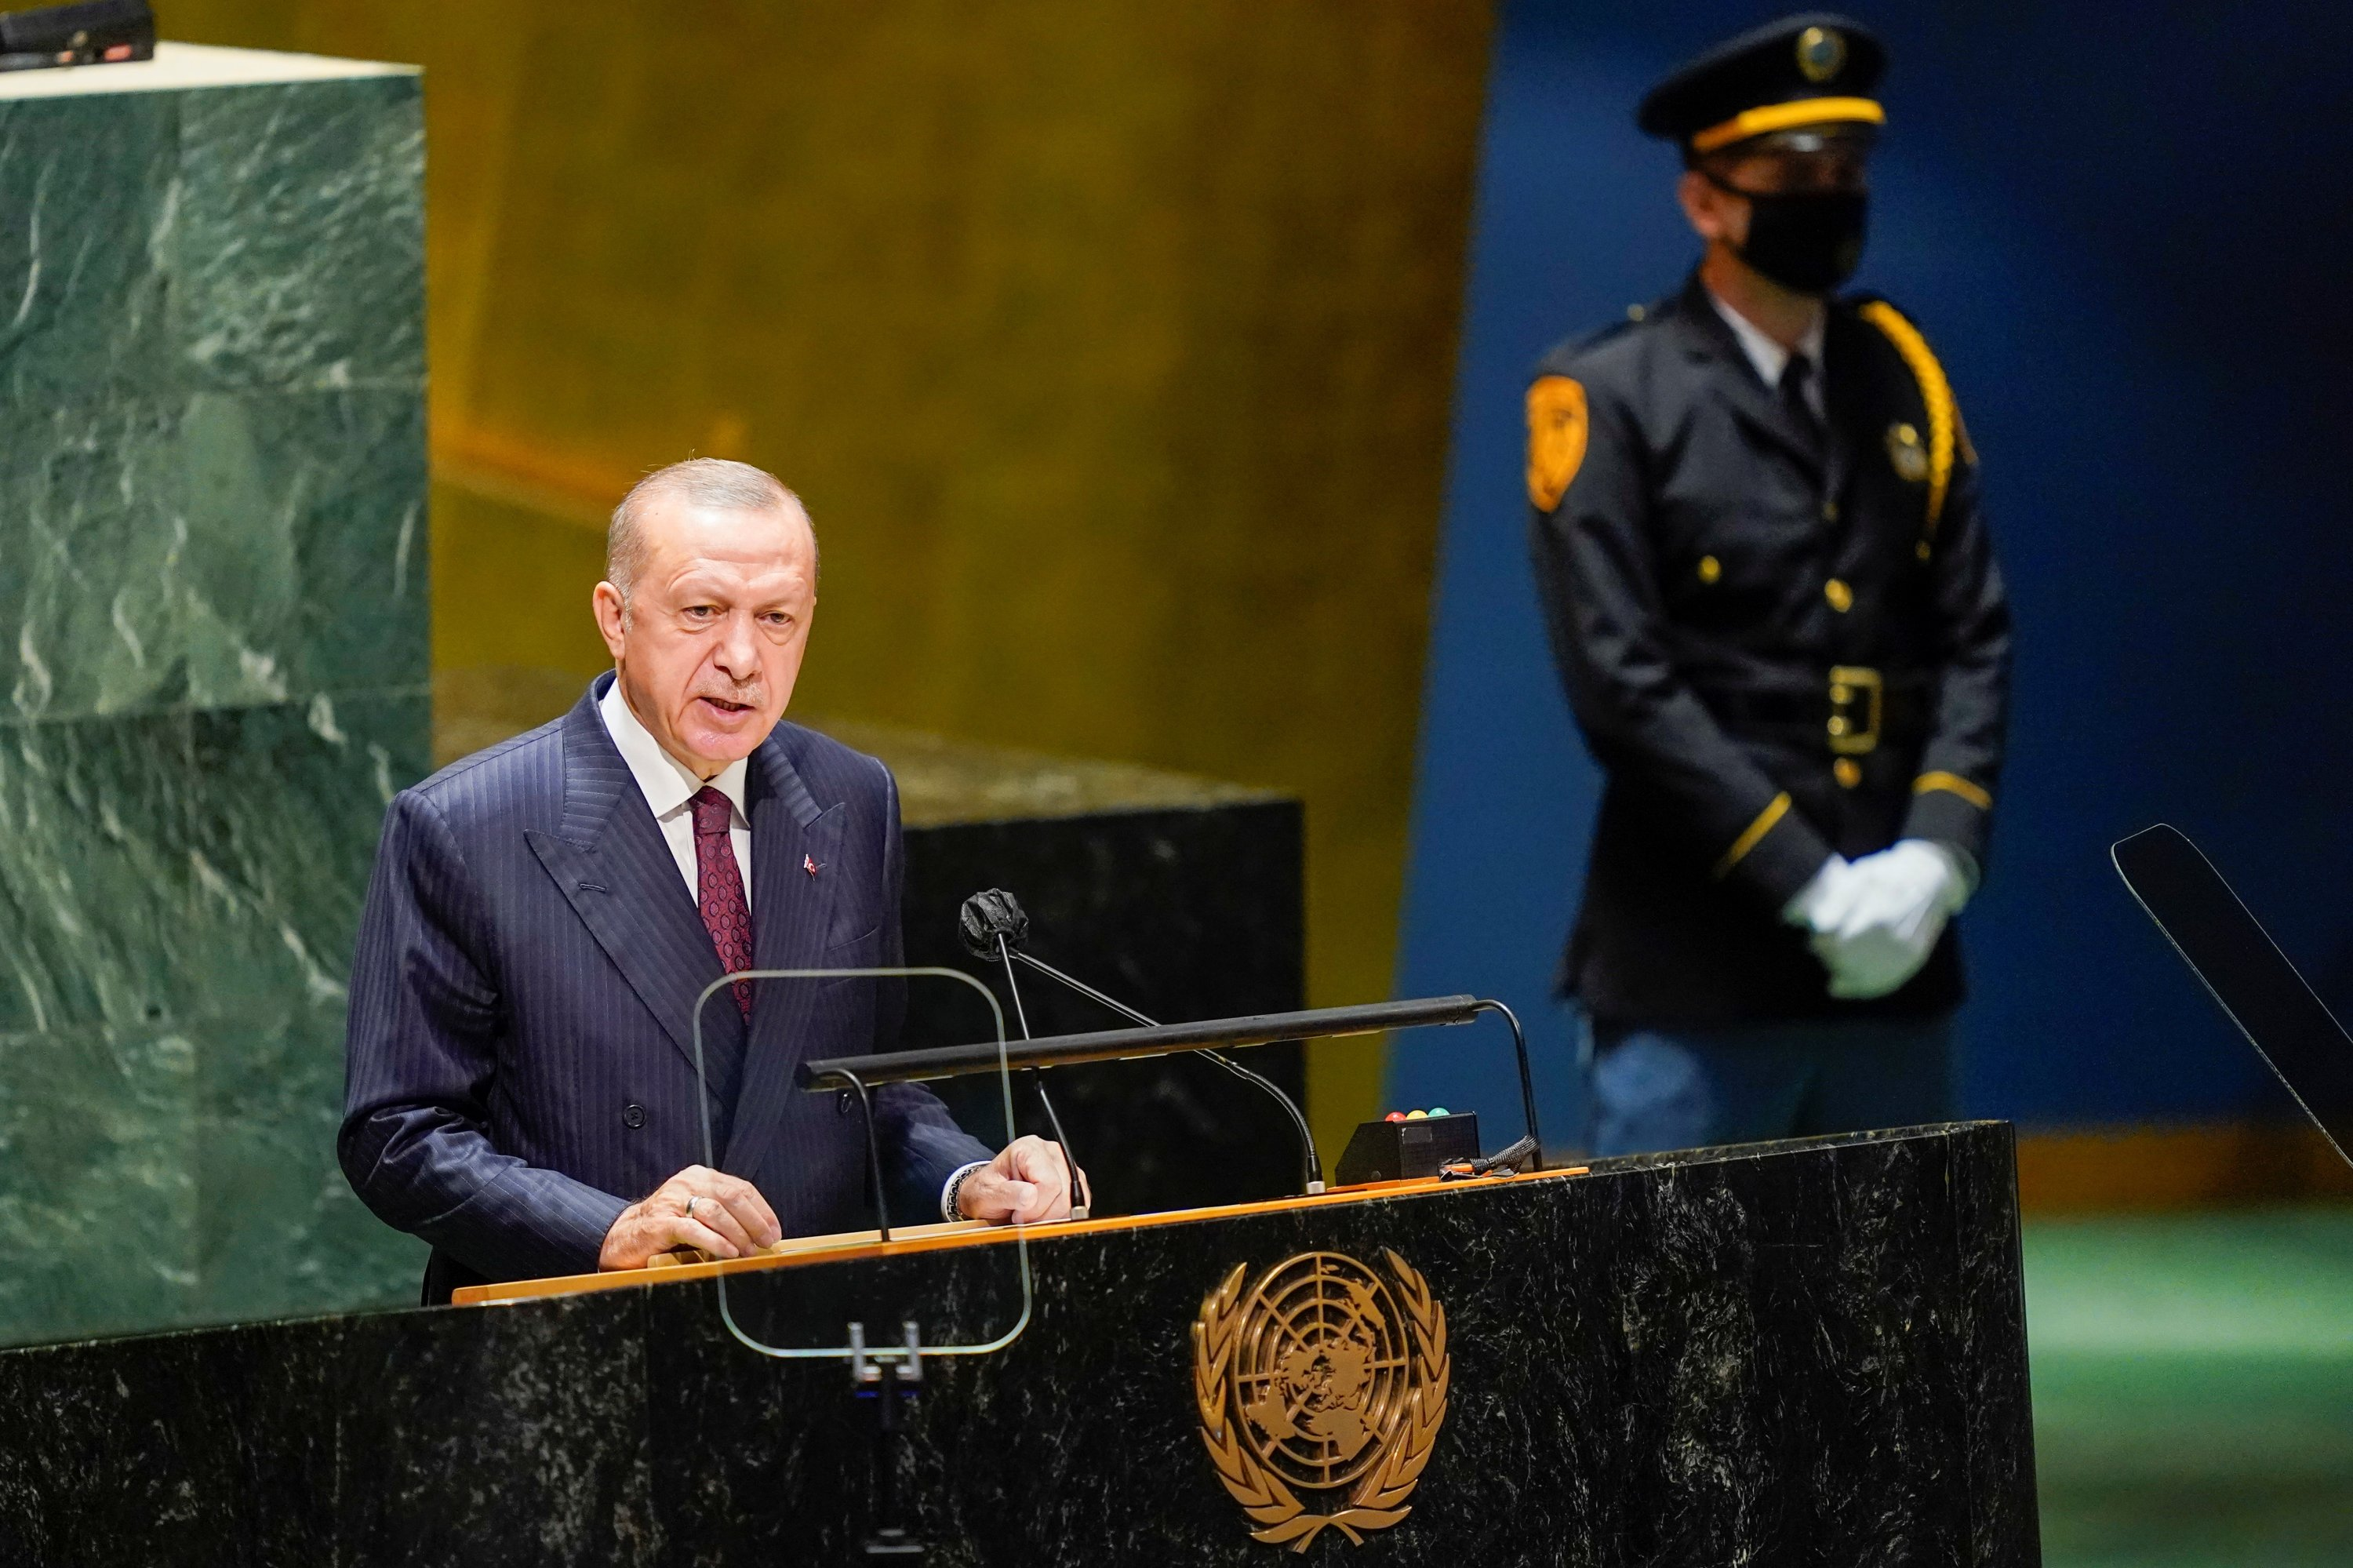 Turkish President Recep Tayyip Erdoğan speaks during the 76th session of the General Assembly at the U.N. headquarters in New York, U.S., on Sept. 21, 2021. (REUTERS Photo)